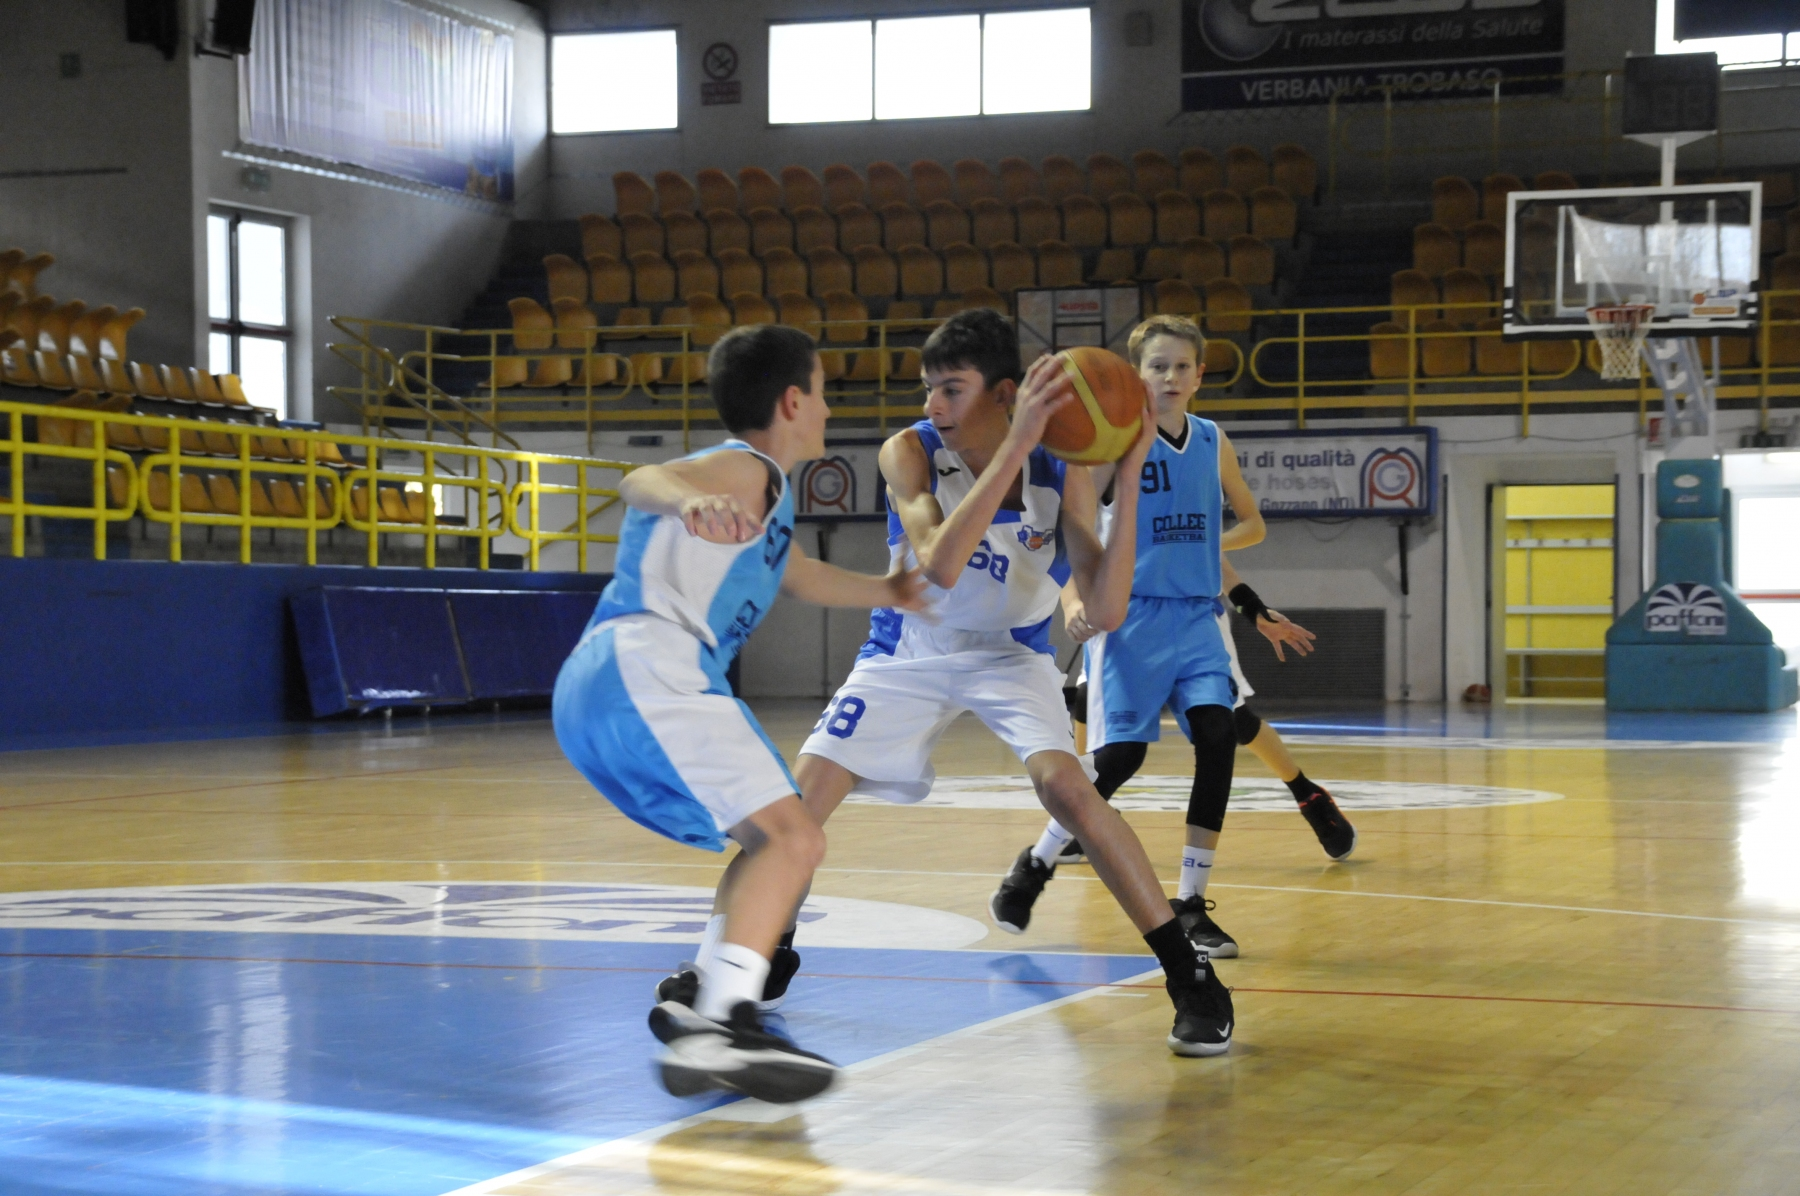 Virtus-College-U13-2020-01-25_006